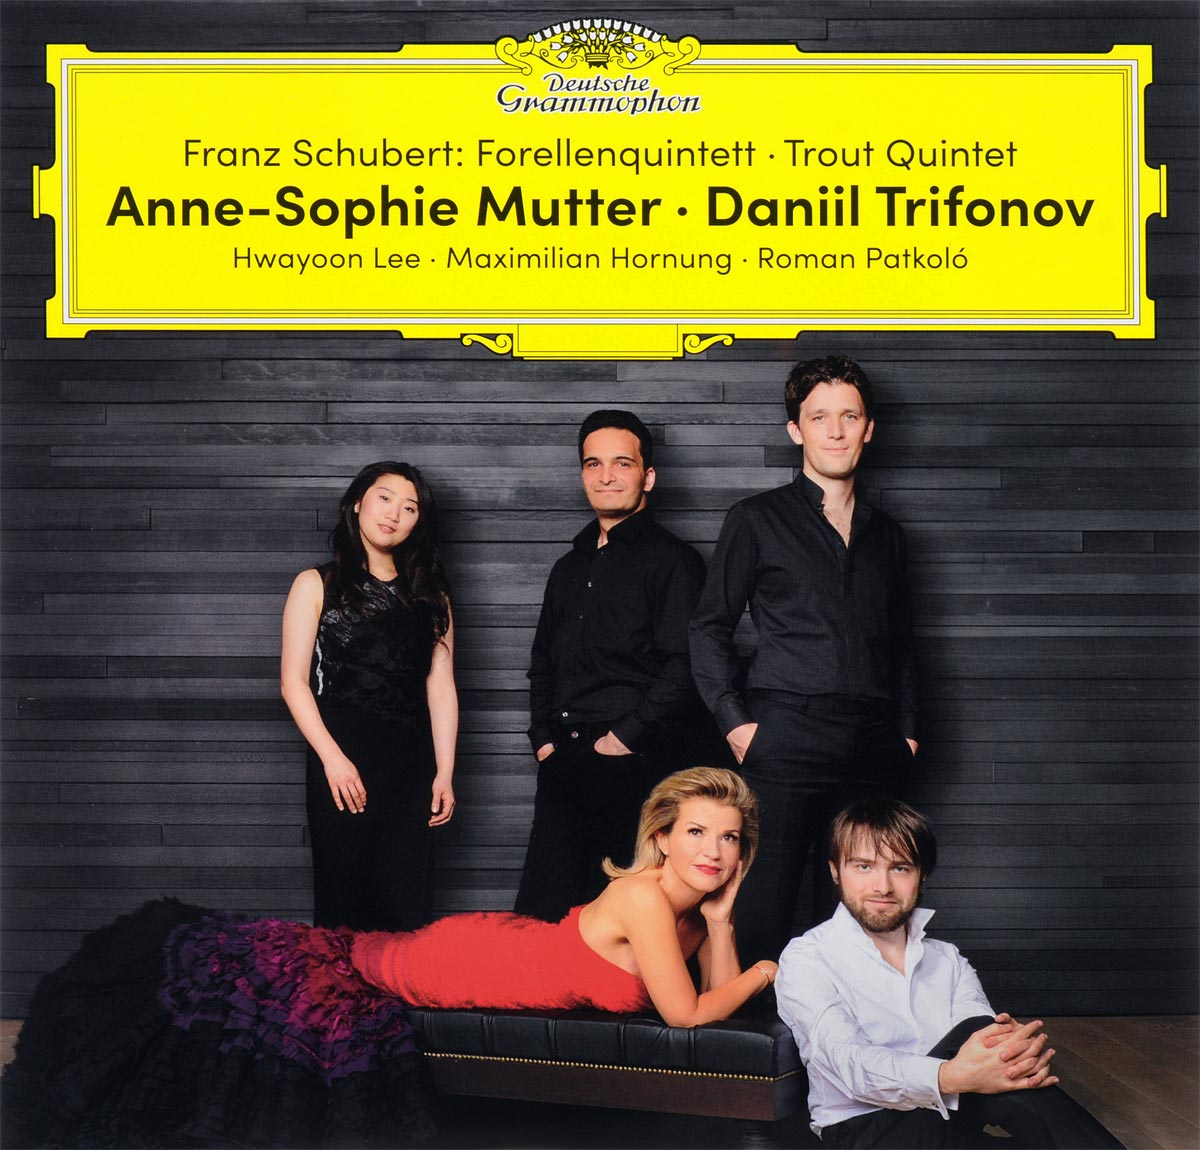 Franz Schubert. Anne-Sophie Mutter, Daniil Trifonov. Forellenquintett (Trout Quintet) (2 LP) walter trout walter trout face the music 25th anniversary 2 lp